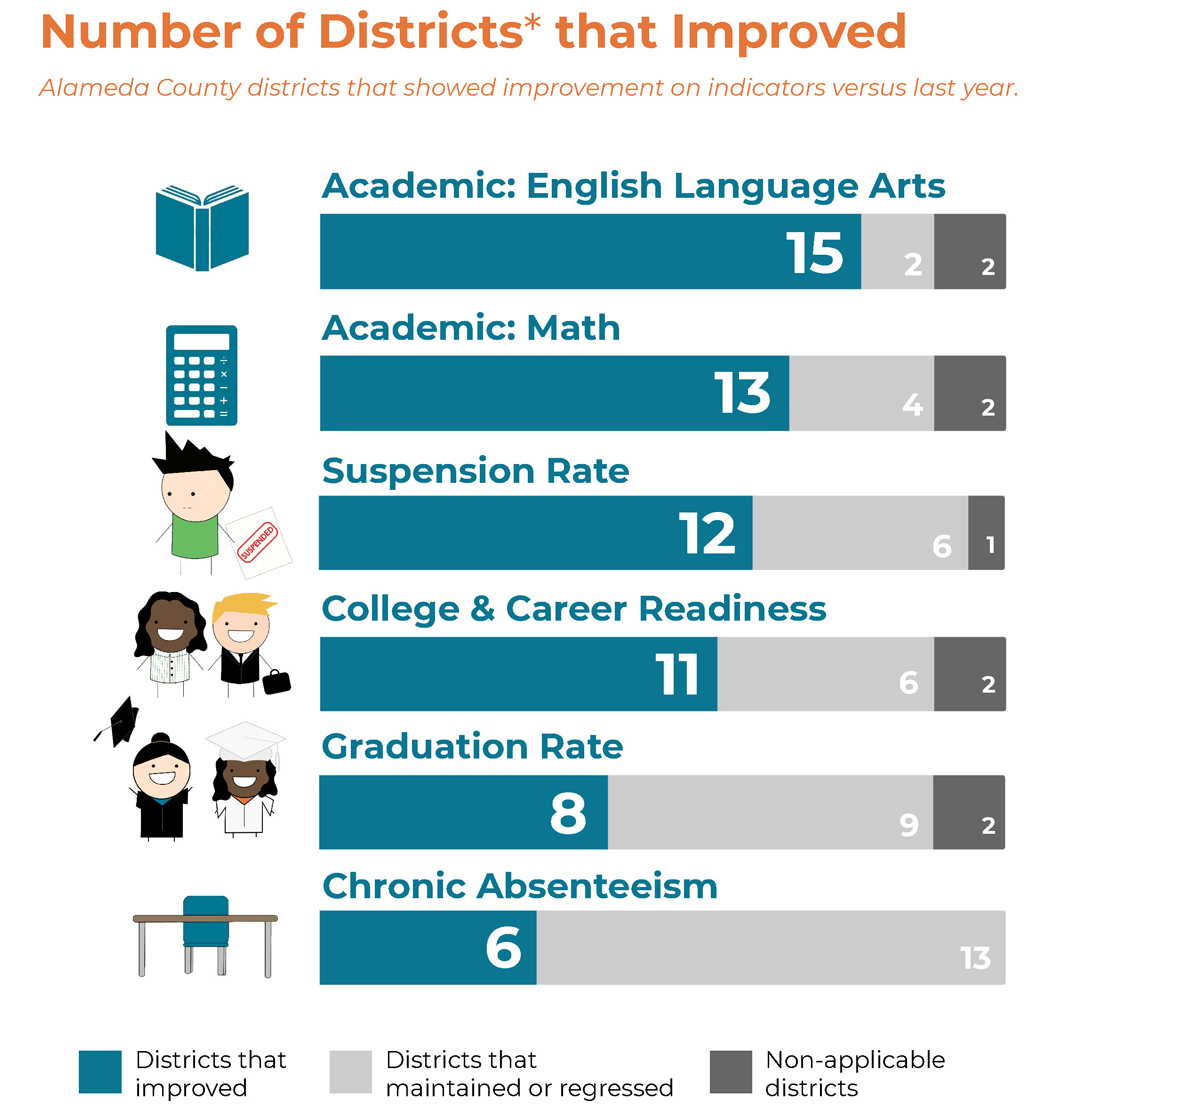 Number of Districts that Improved, Alameda County districts that showed improvement on indicators versus last year (Includes Alameda County's 18 school districts and the Alameda County Office of Education). Academic: English Language Arts: 15, Academic: Math: 13, Suspension Rate: 12, College & Career Readiness: 11, Graduation Rate: 8, Chronic Absenteeism: 6